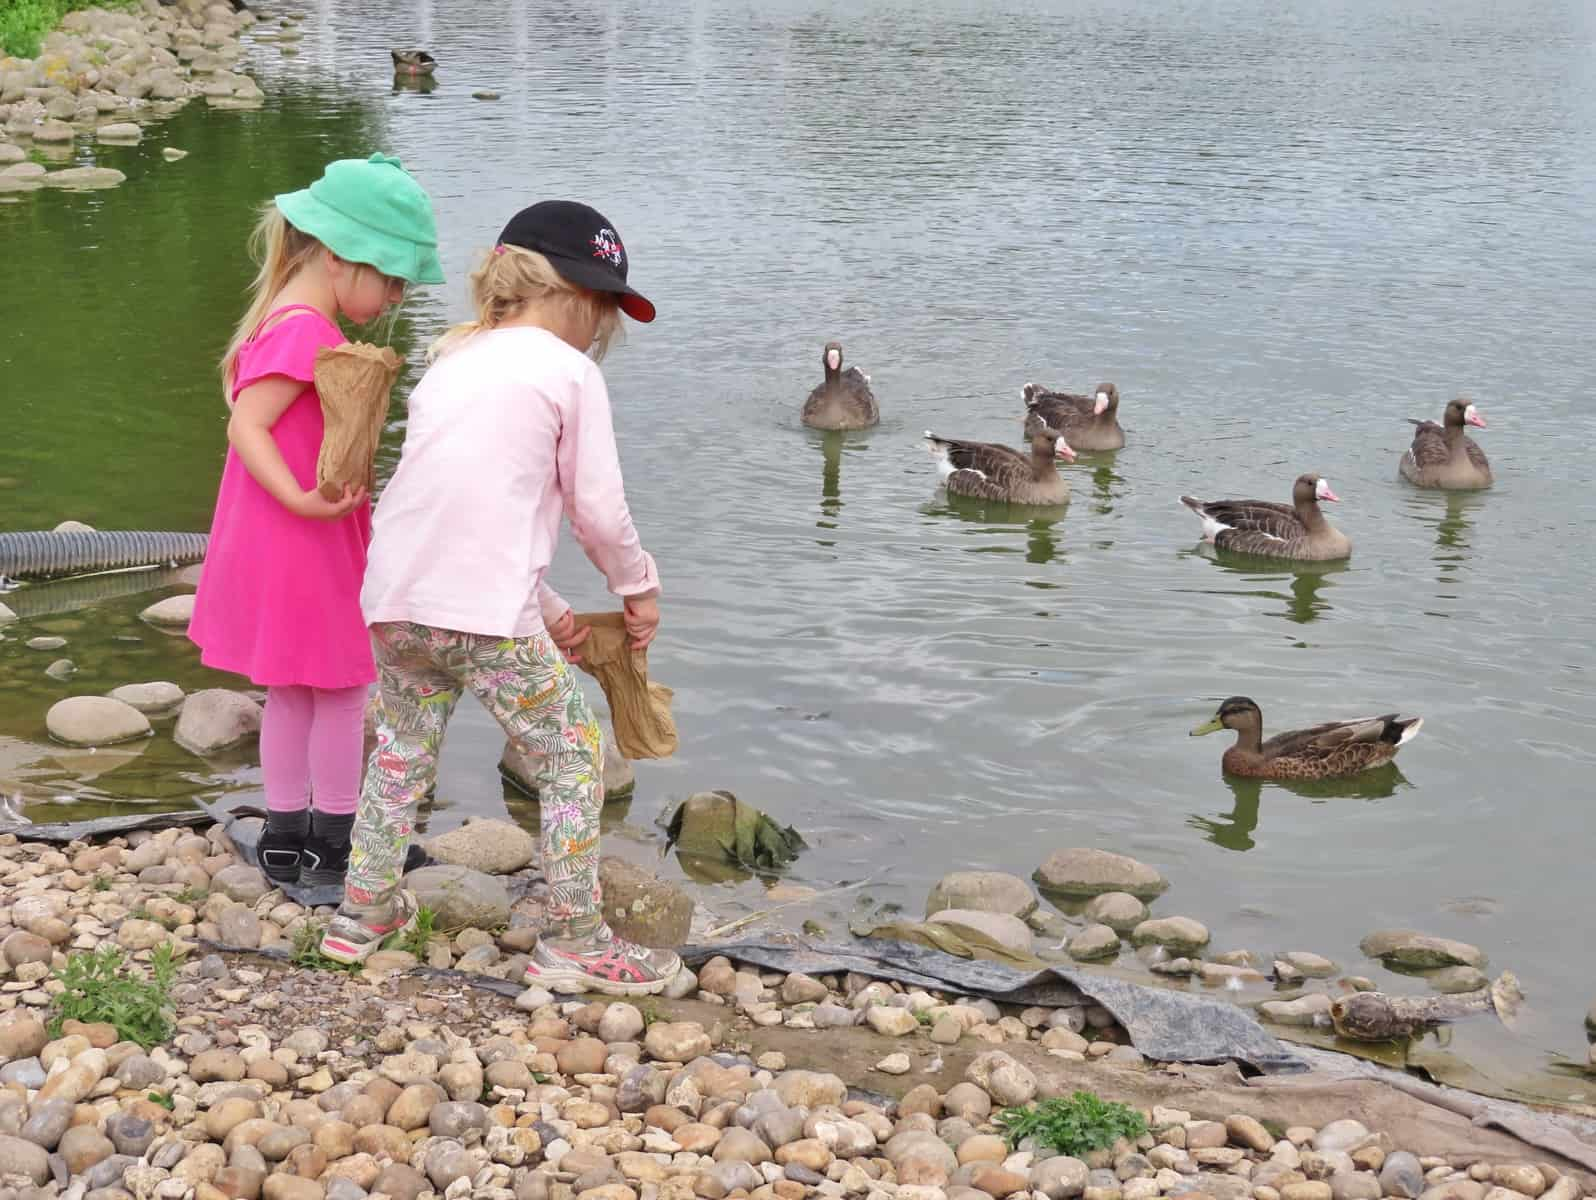 WWT Slimbridge, Gloucestershire - two little girls feeding ducks and geese